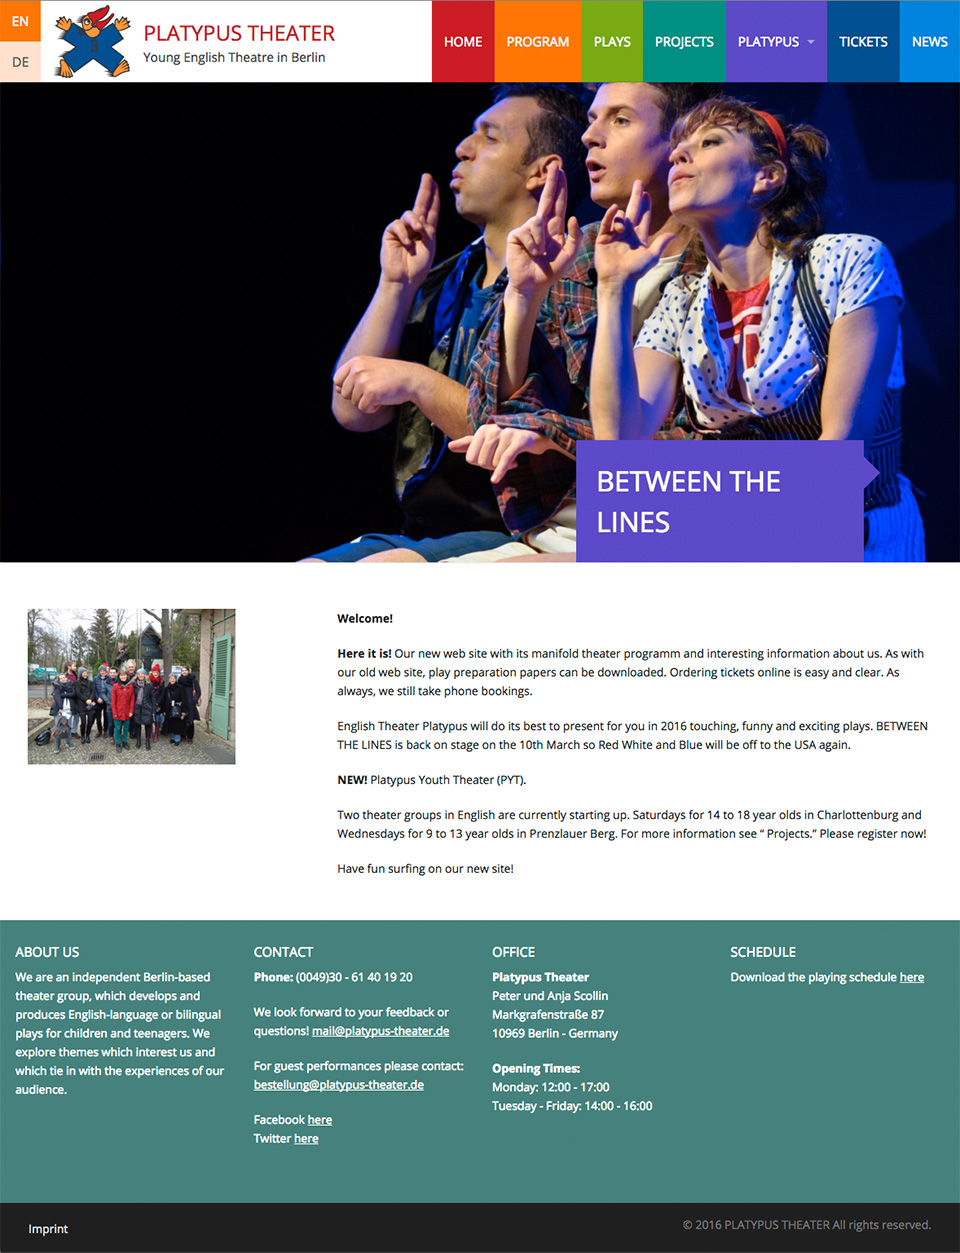 webdesign-homepage-platypus-theater